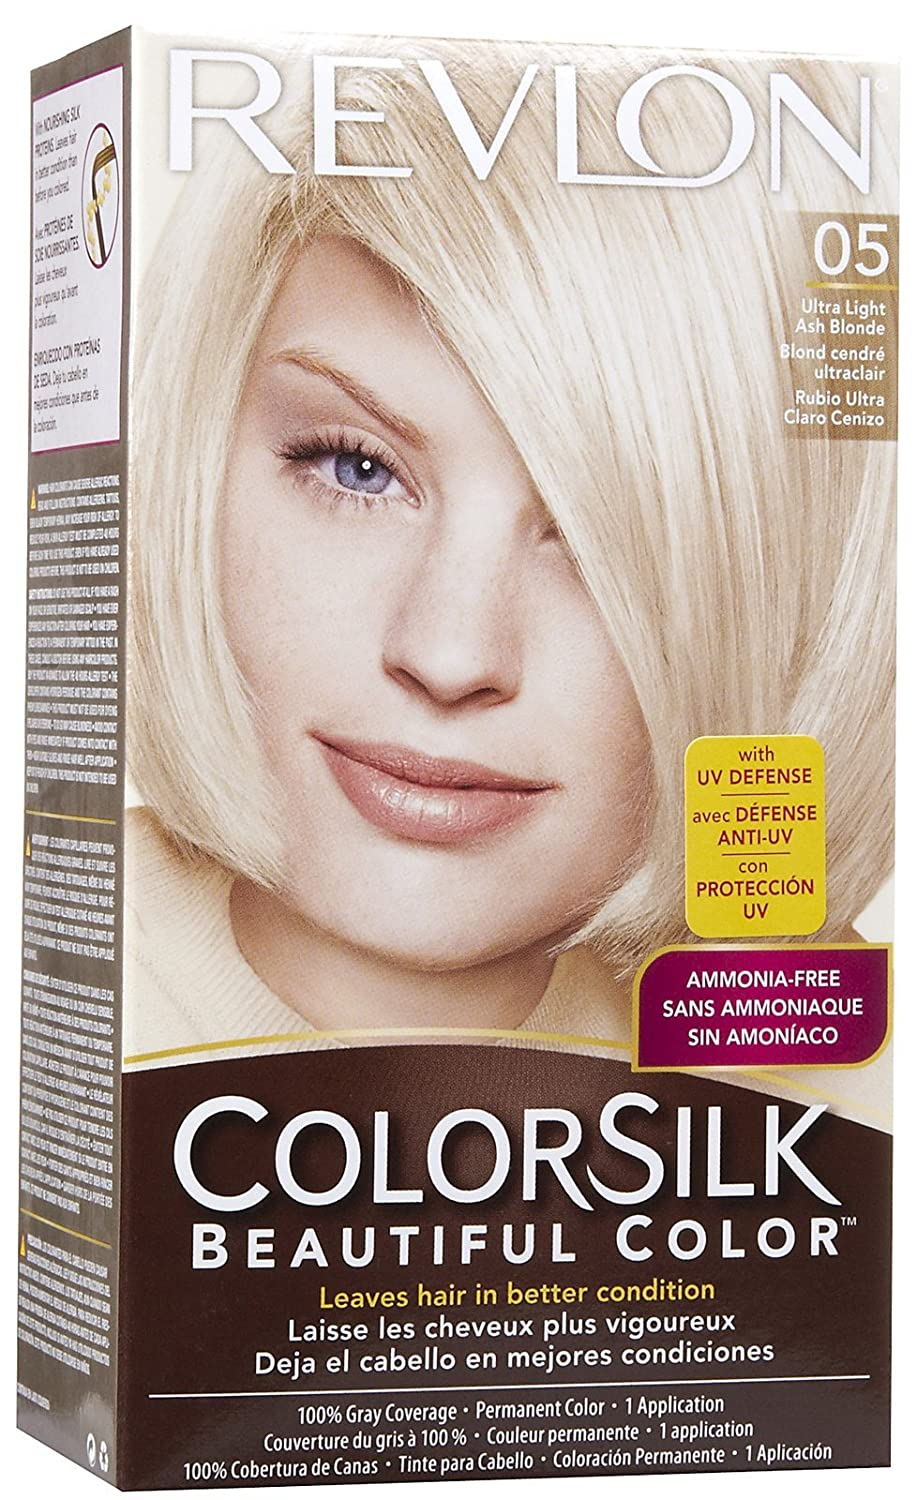 Thank you Revlon colorsilk light ash blonde where can